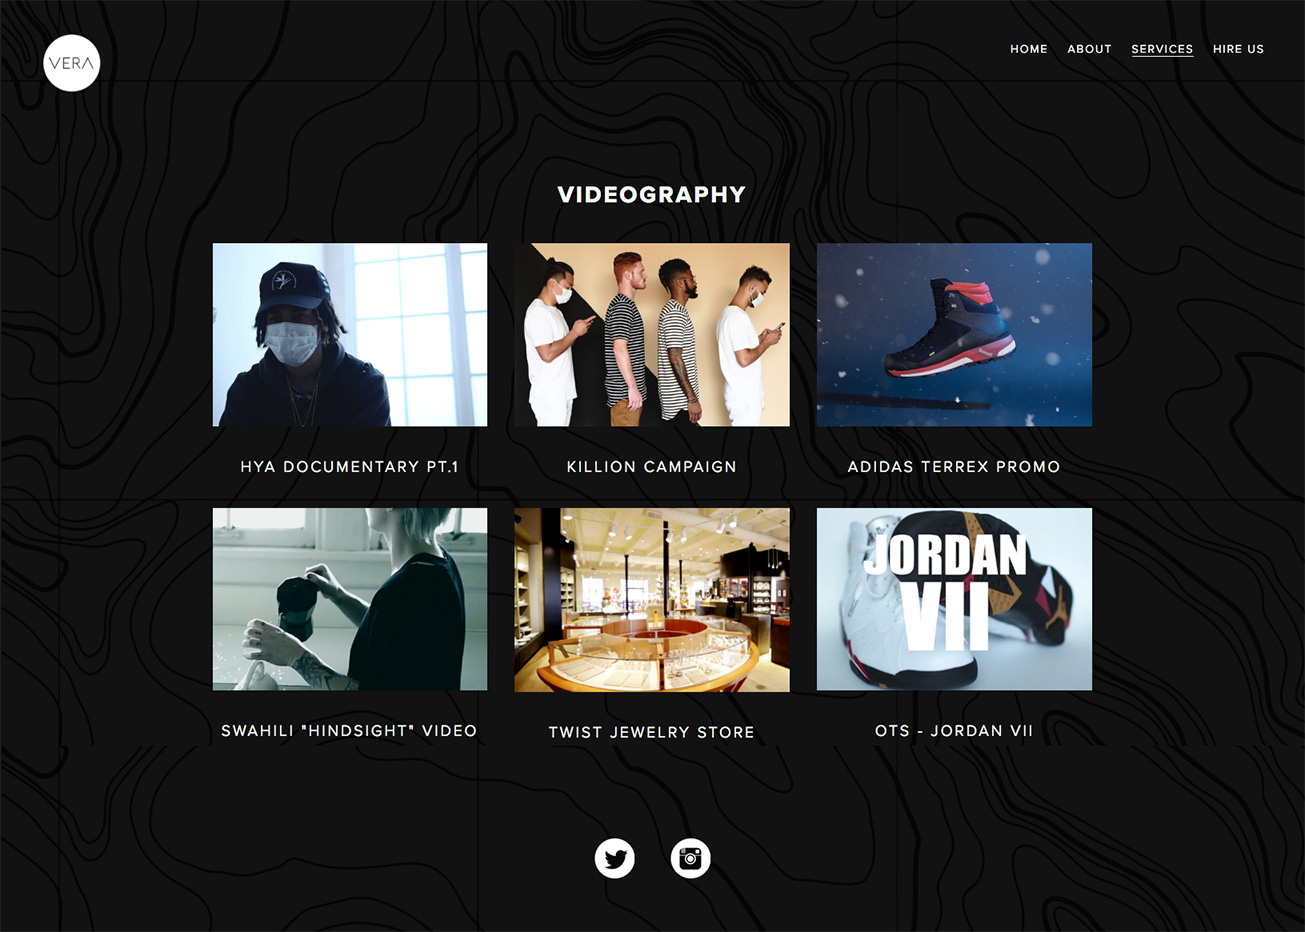 videography-page.png